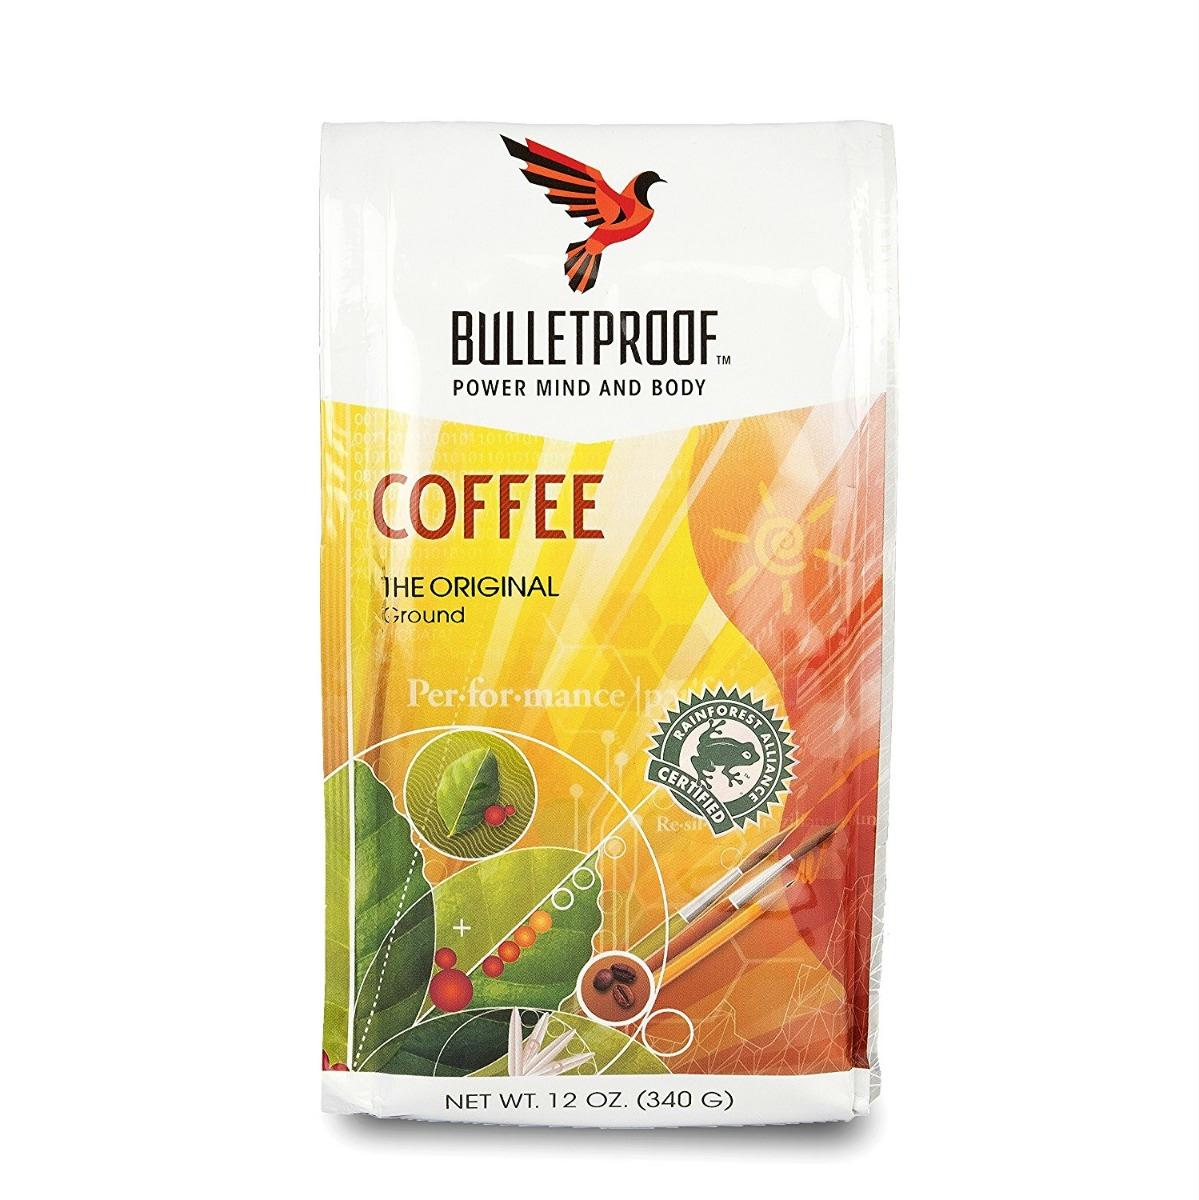 Bulletproof: Coffee Ground, 12 Oz